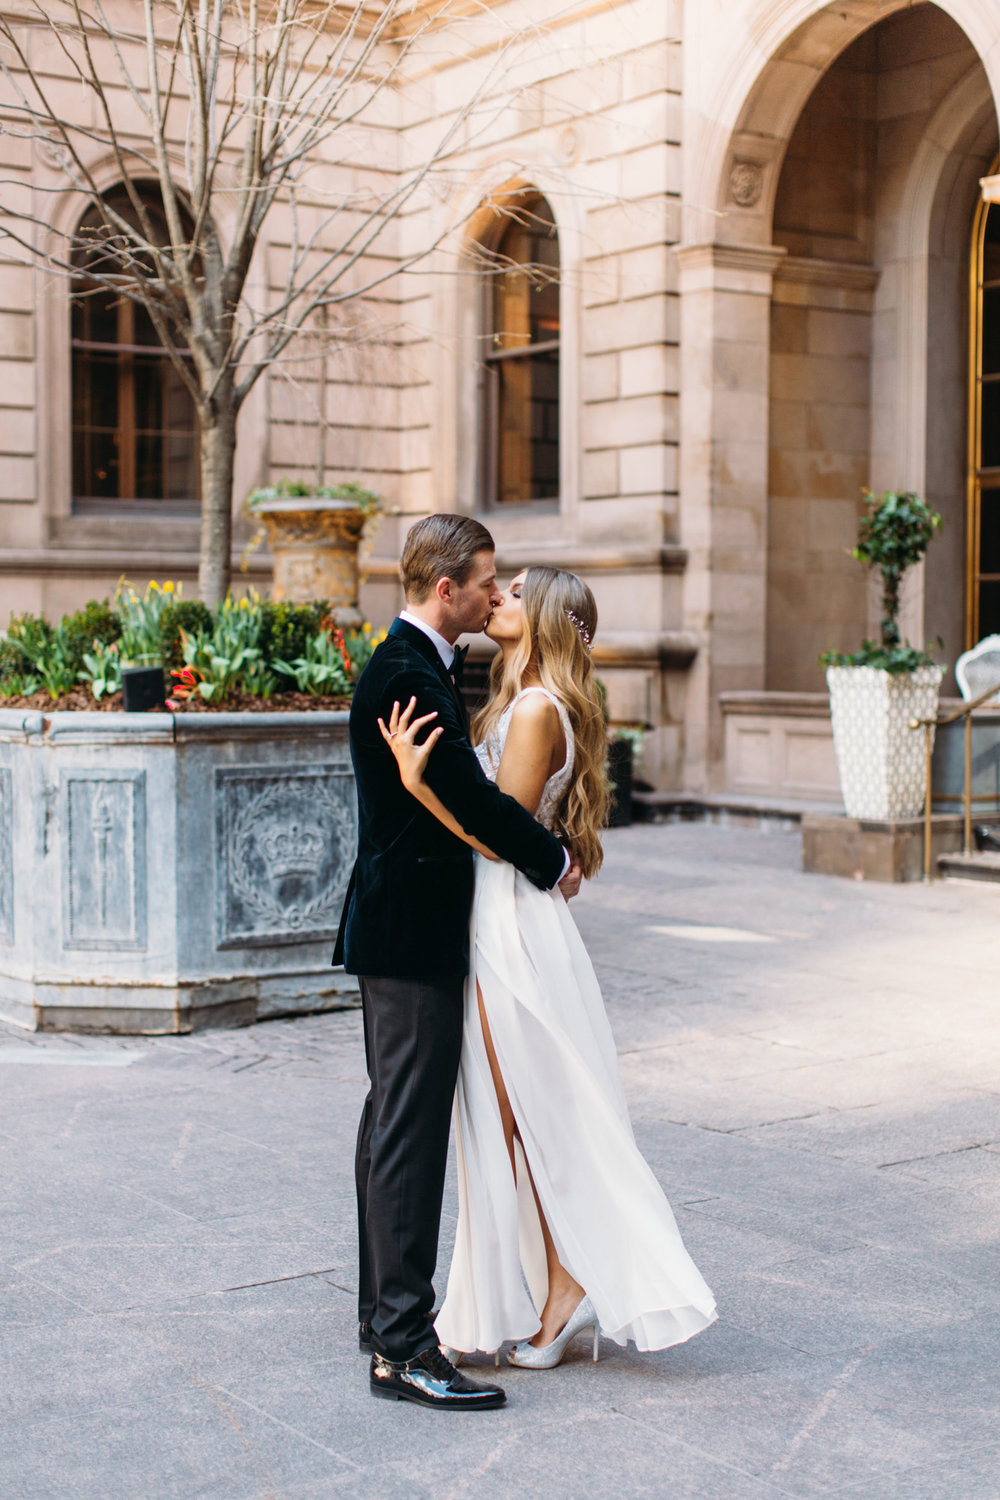 _B2C9679NYC wedding photography manhattan penhouse lotte palace brooklyn wedding photogrpaher boris zaretsky.jpg